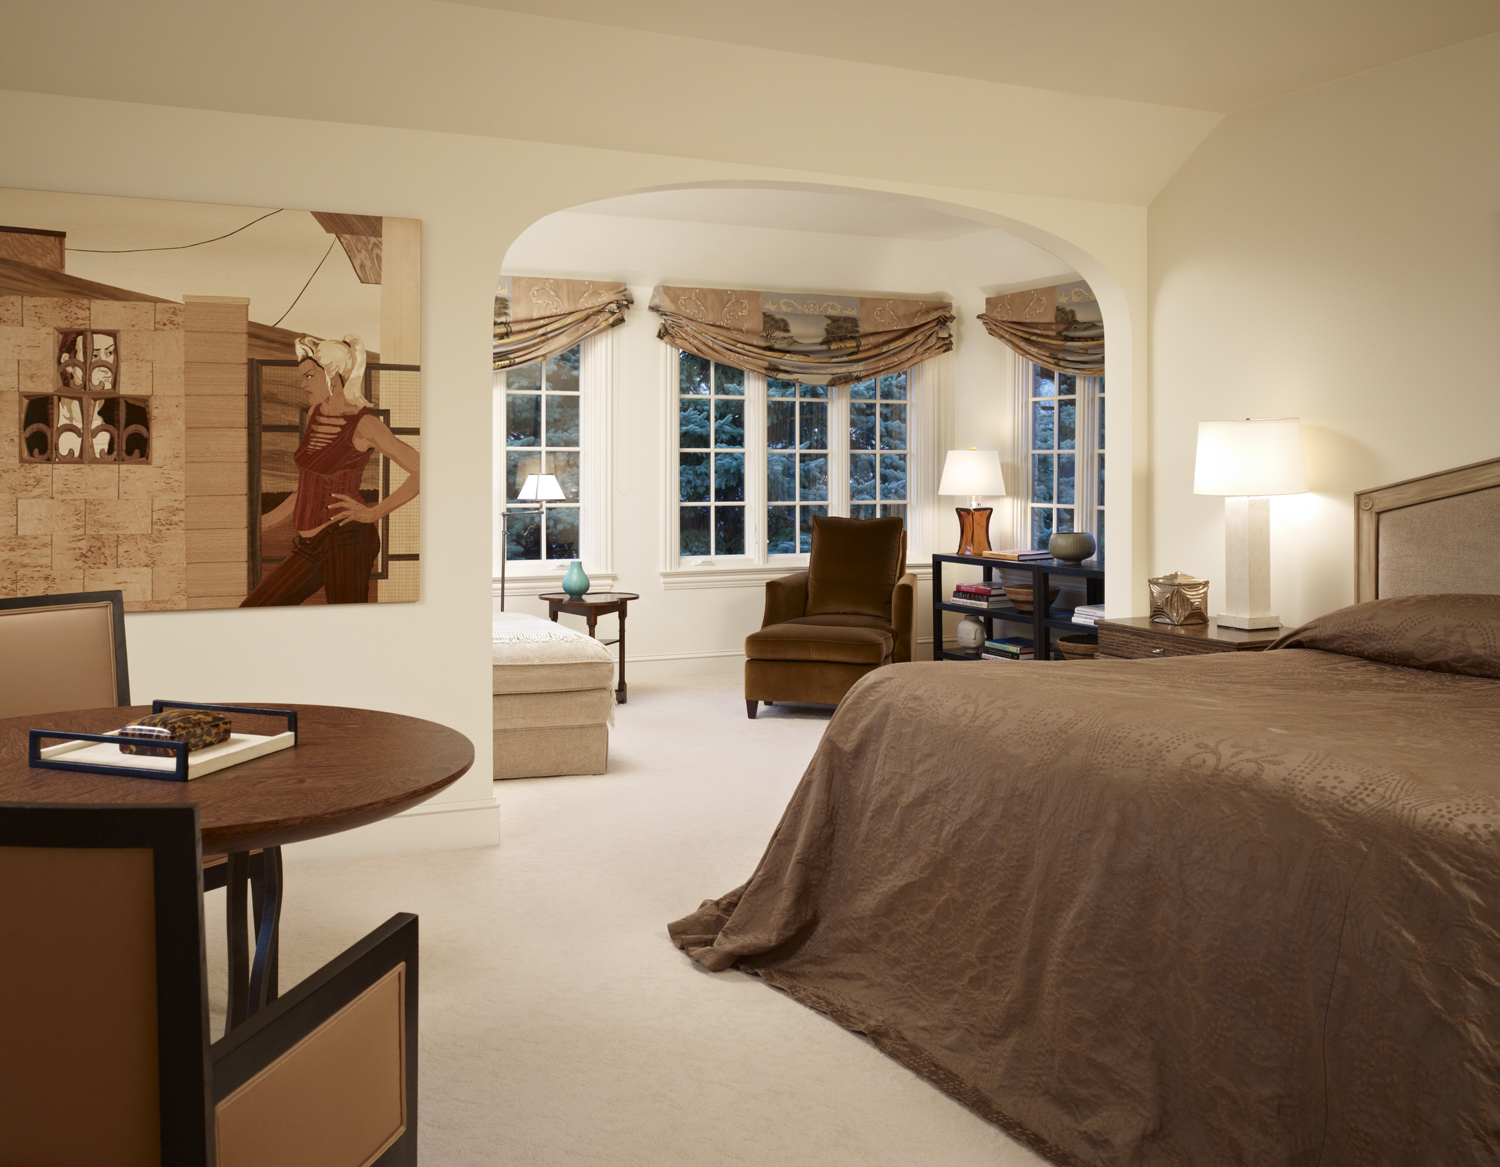 Bedroom by Mitchell Channon Design